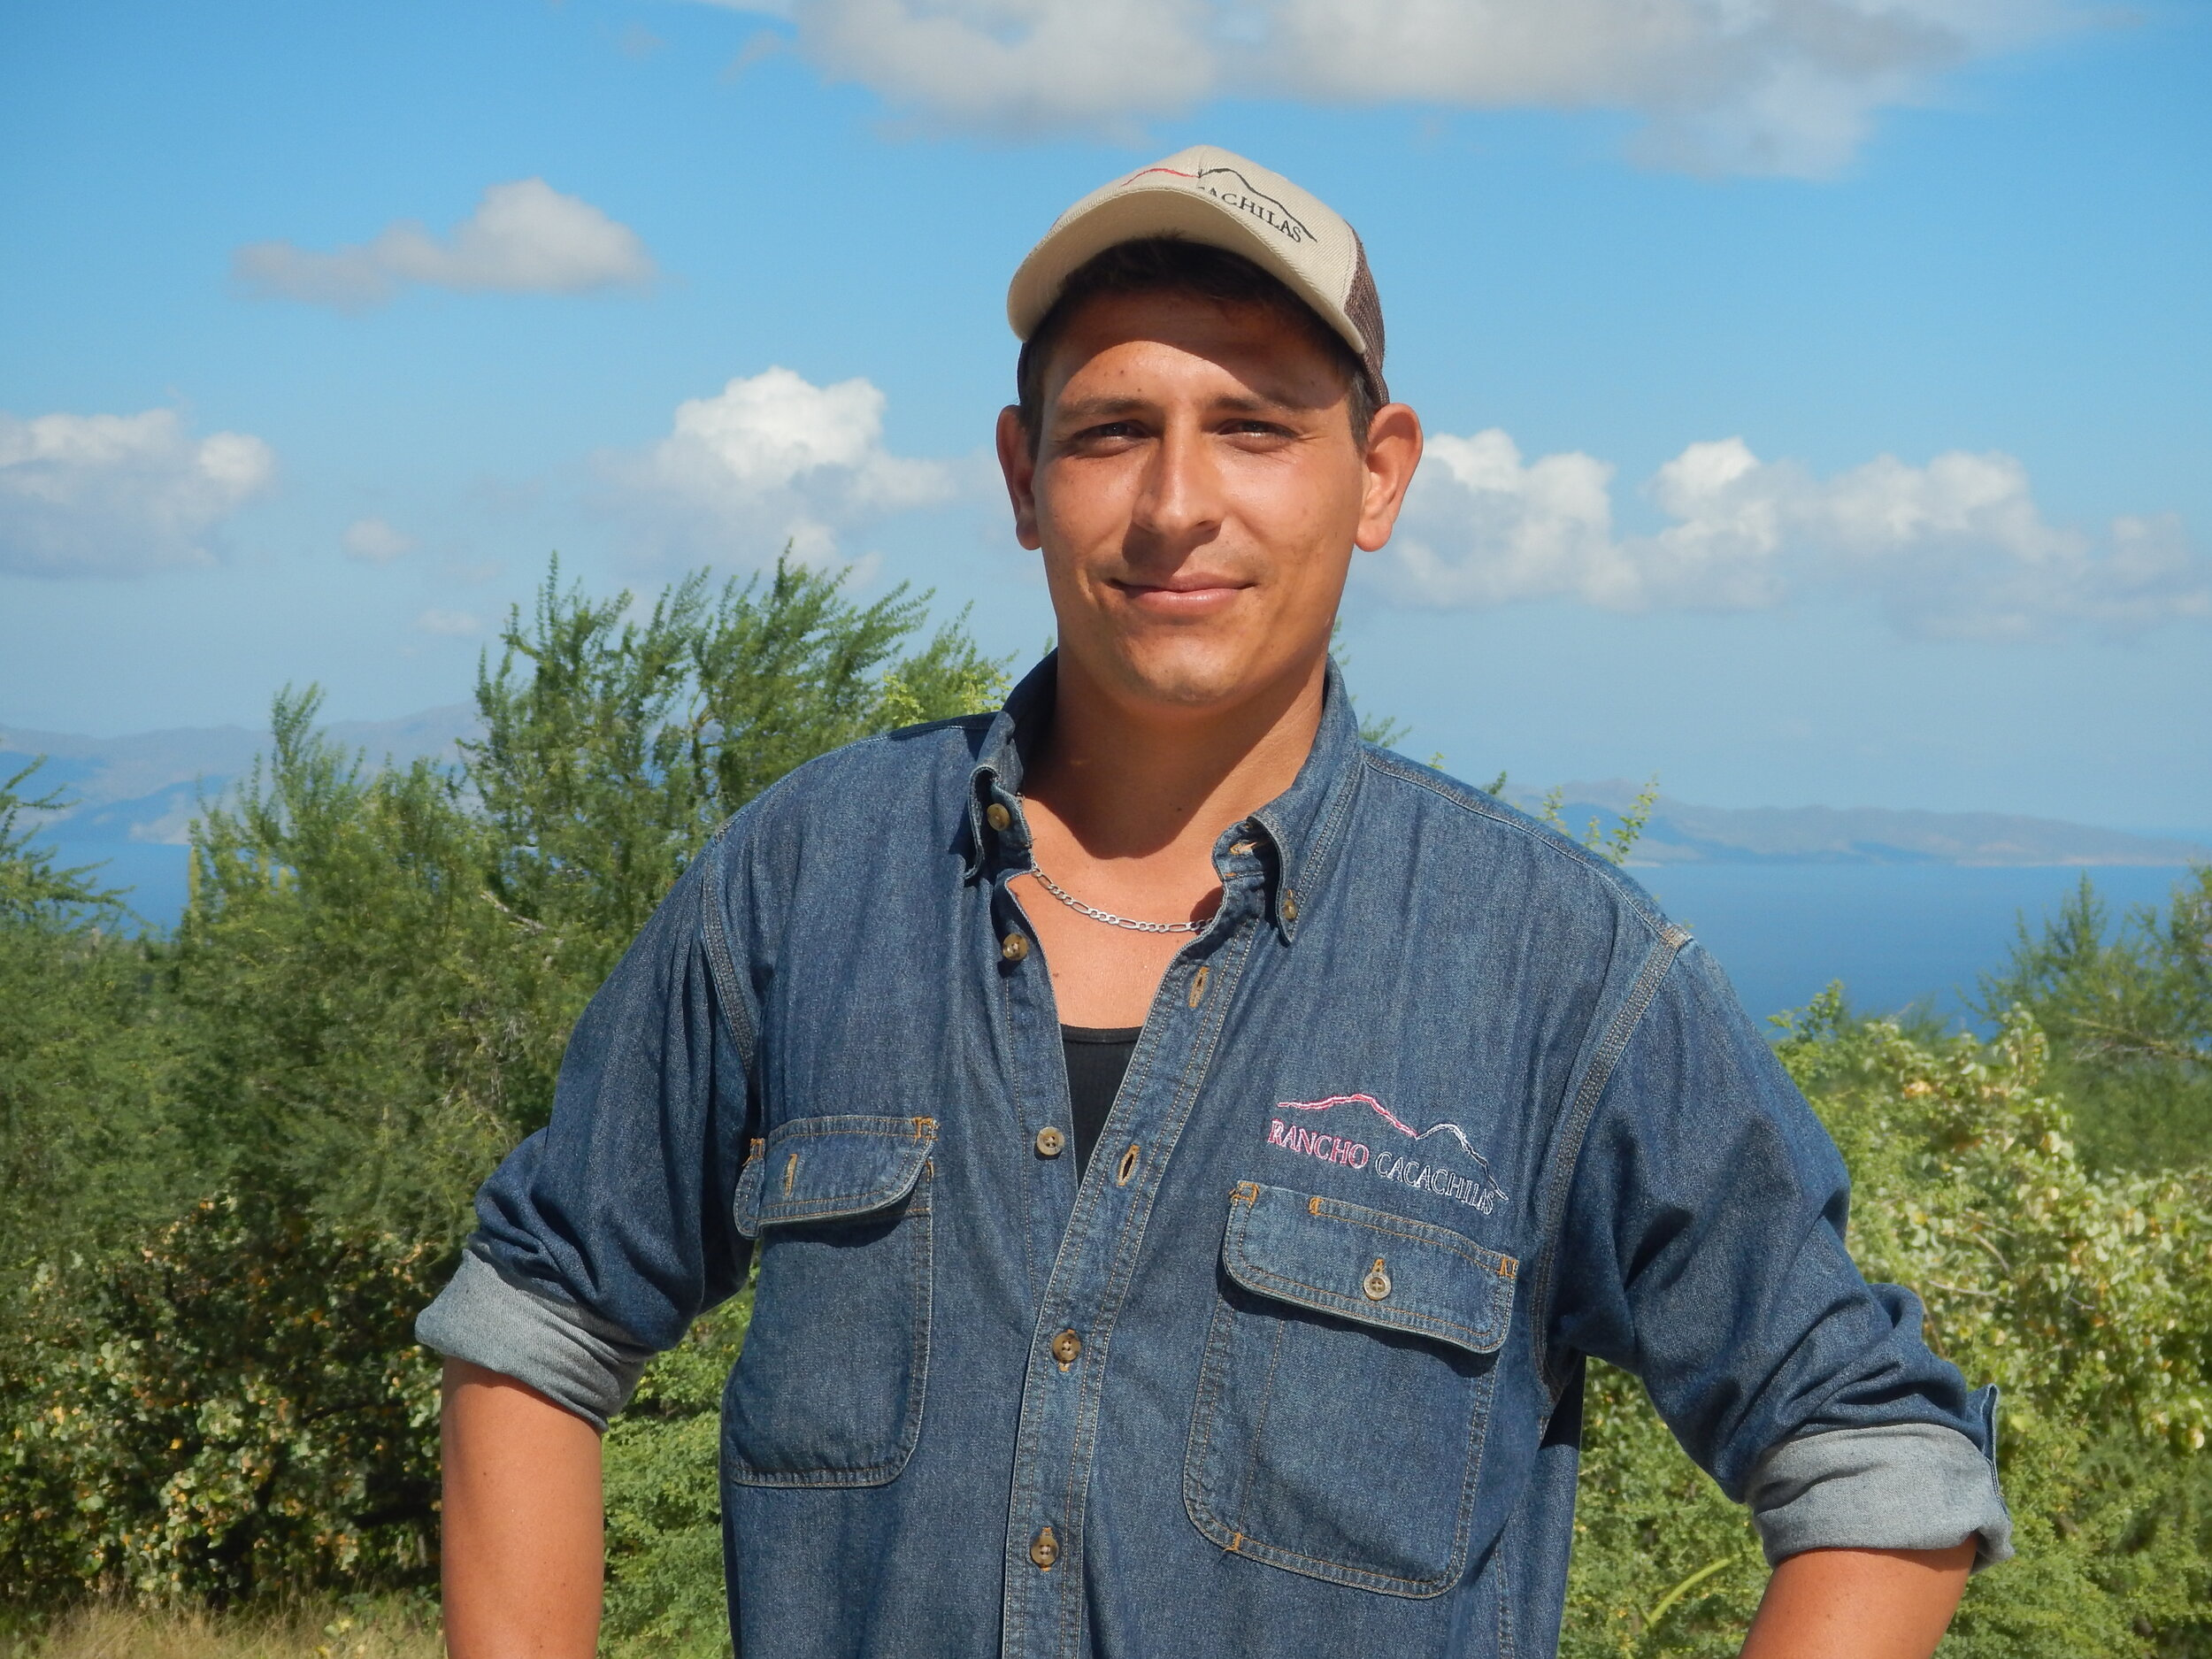 Alejandro Aviles Rieke   Alejandro is a young, enthusiastic Trail builder. He is a really strong team member and is always willing to work hard while on the field constructing trails.